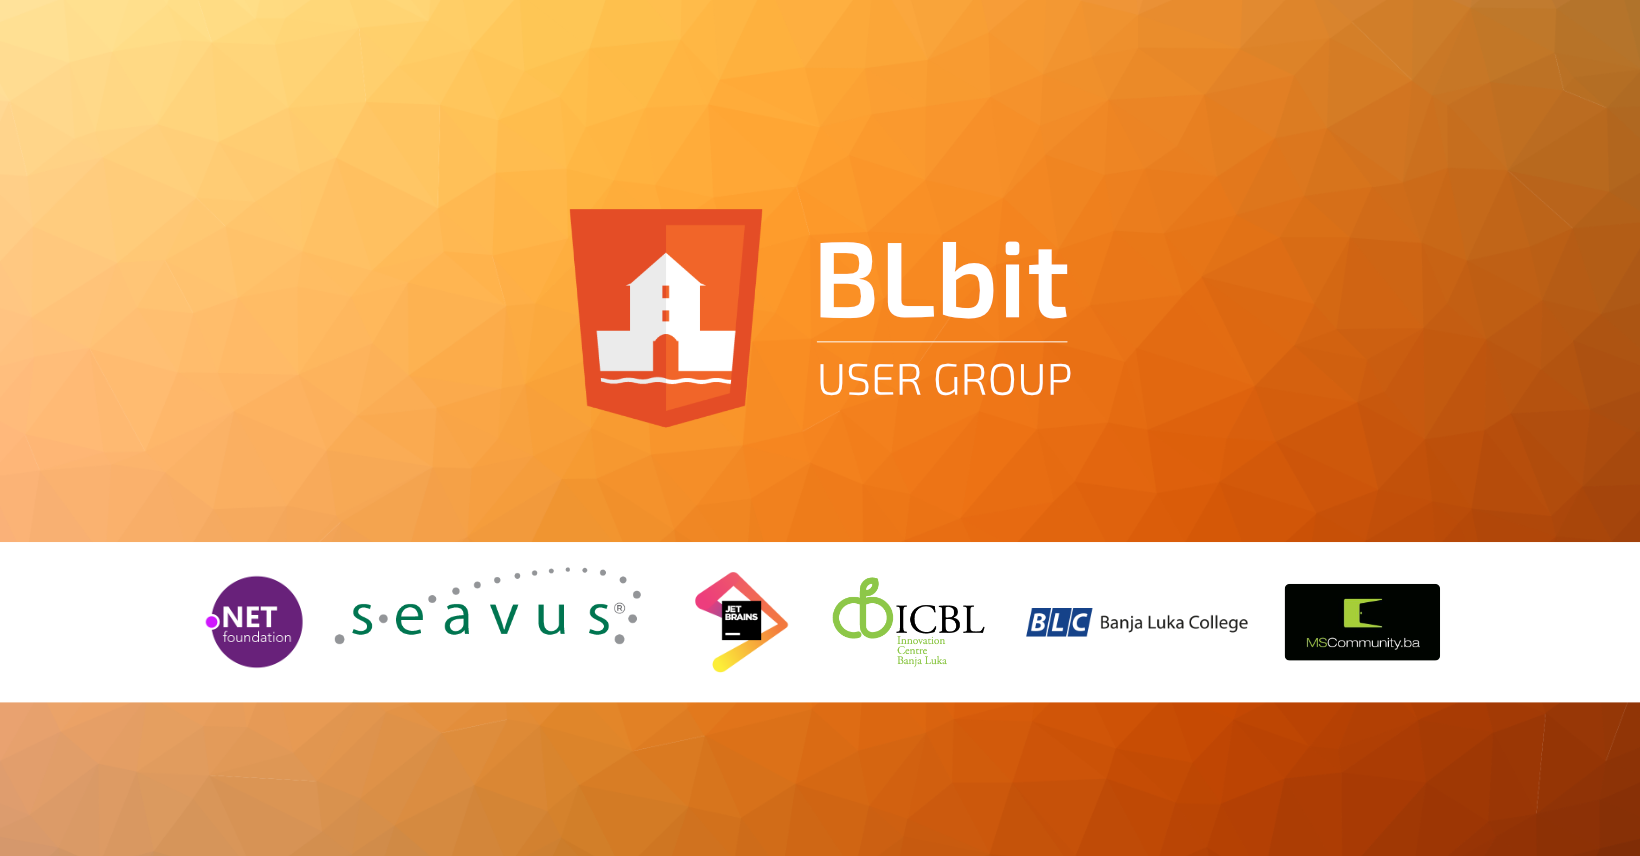 BLbit User Group Banja Luka